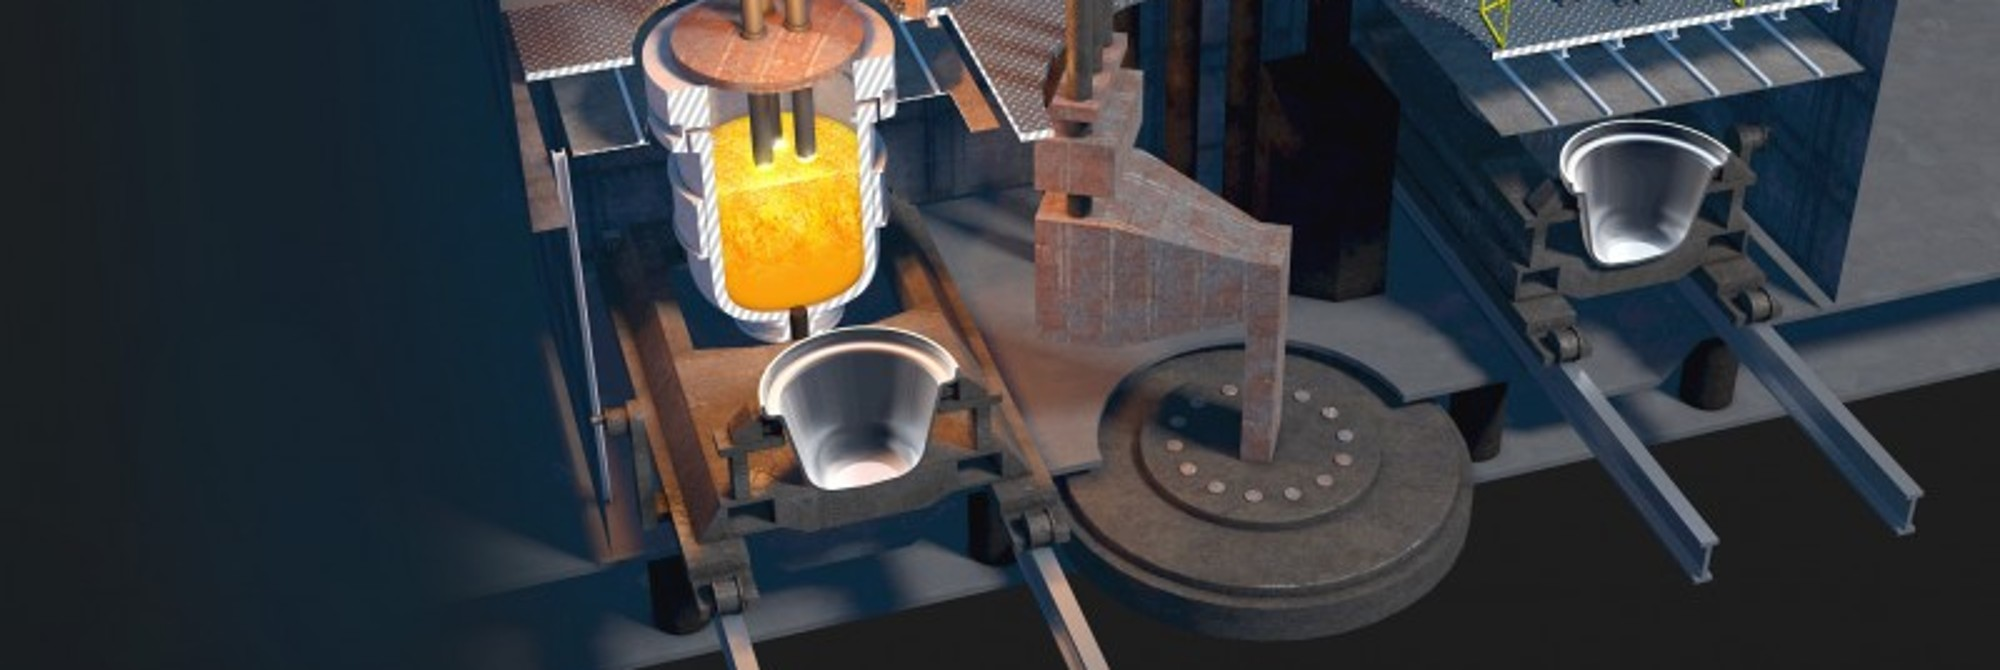 Molten metal from the furnace | Kundenmagazin thyssenkrupp Steel Europe